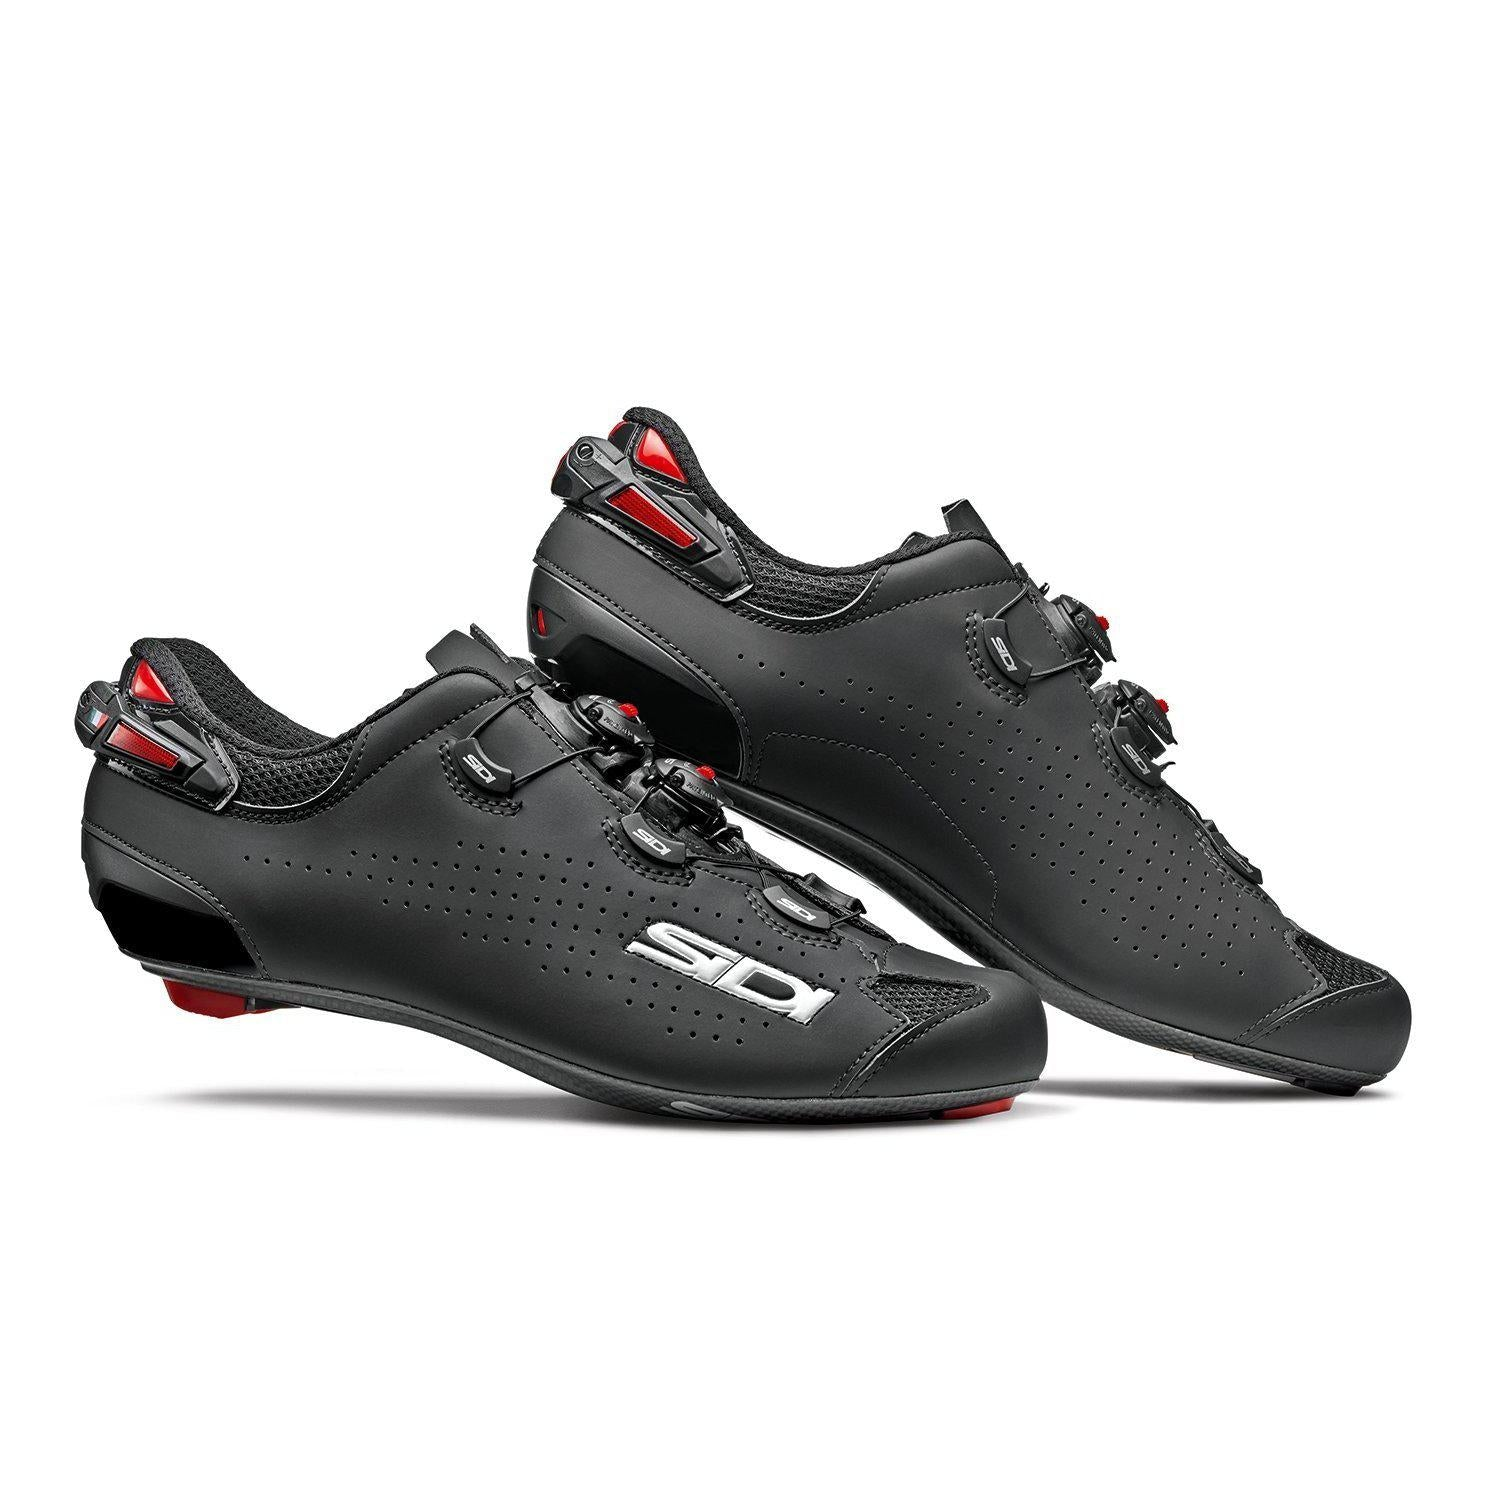 Sidi-Sidi Shot 2 Road Shoes-Black/Black-38-SISHOT2NENE38-saddleback-elite-performance-cycling